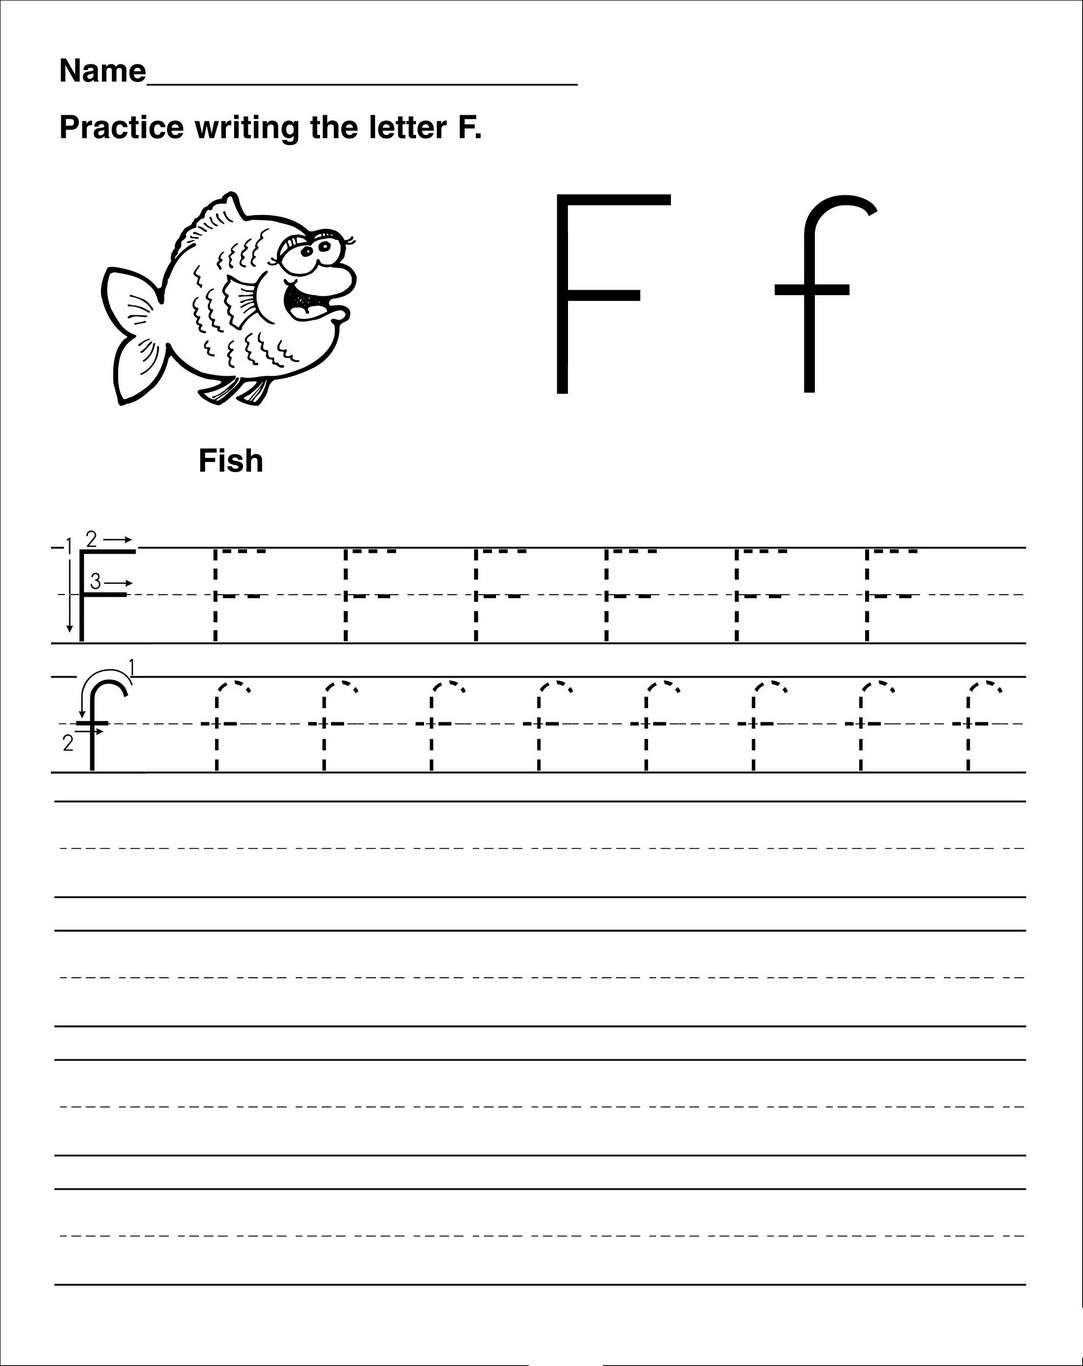 picture regarding Letter F Printable titled Letter F Worksheet Functions prepare Understanding Printable